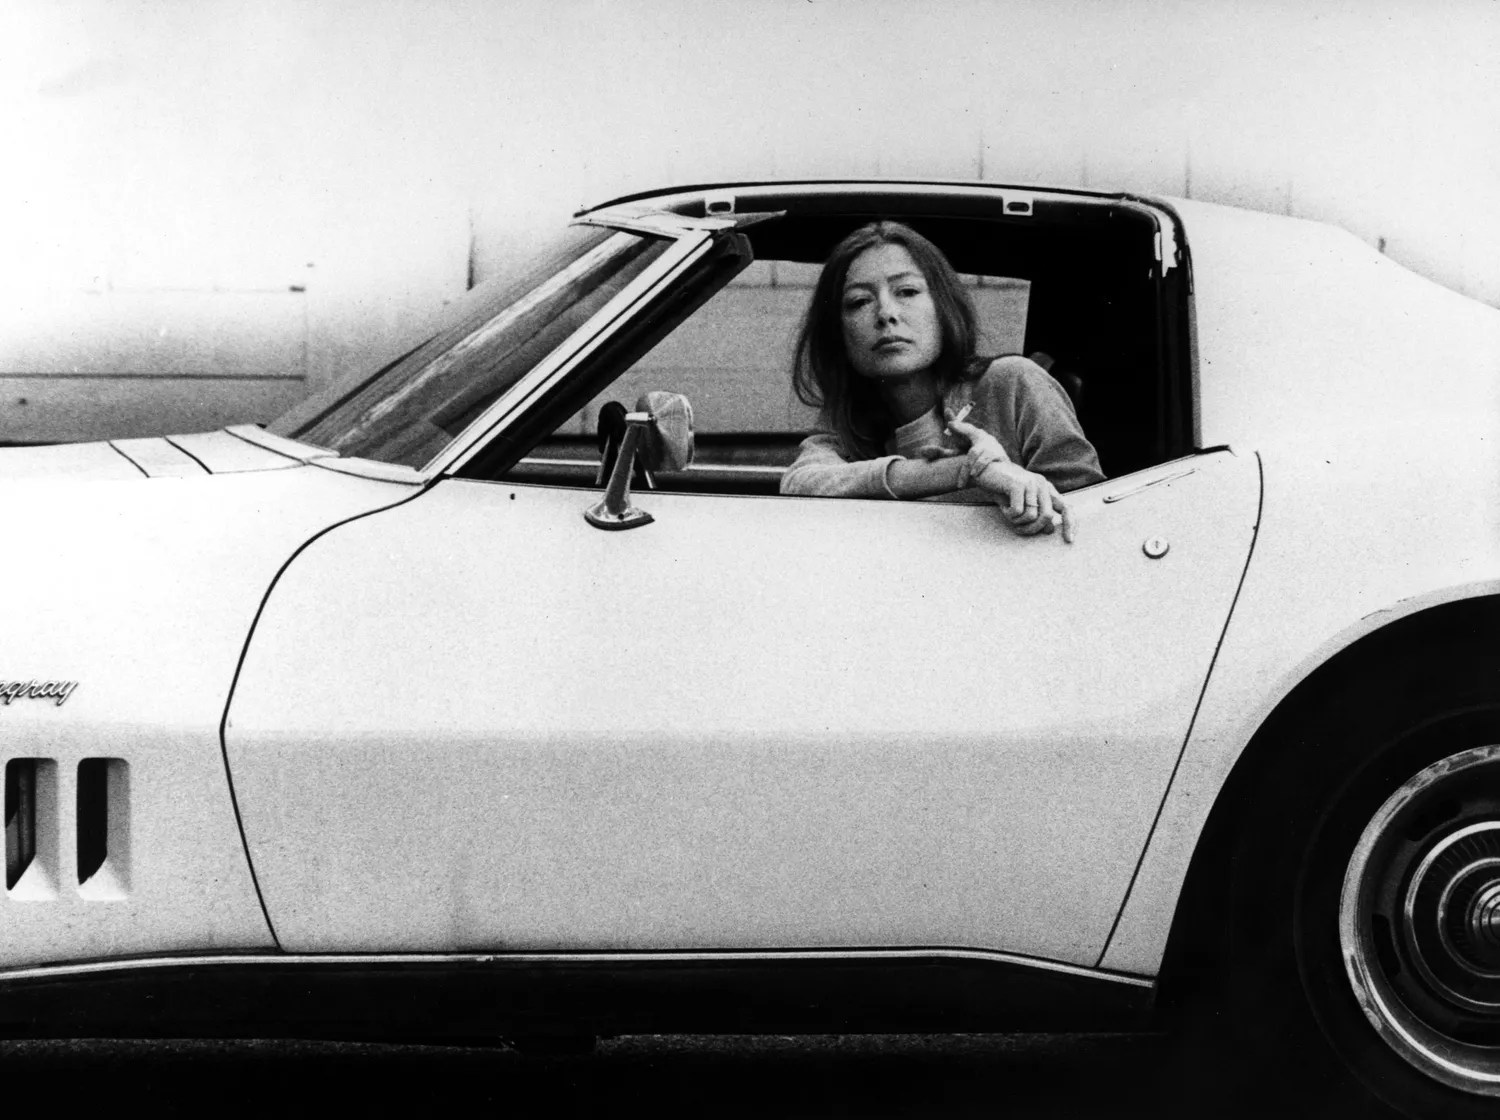 https://i2.wp.com/pixel.nymag.com/imgs/fashion/daily/2015/01/13/13-joan-didion-idol.w750.h560.2x.jpg